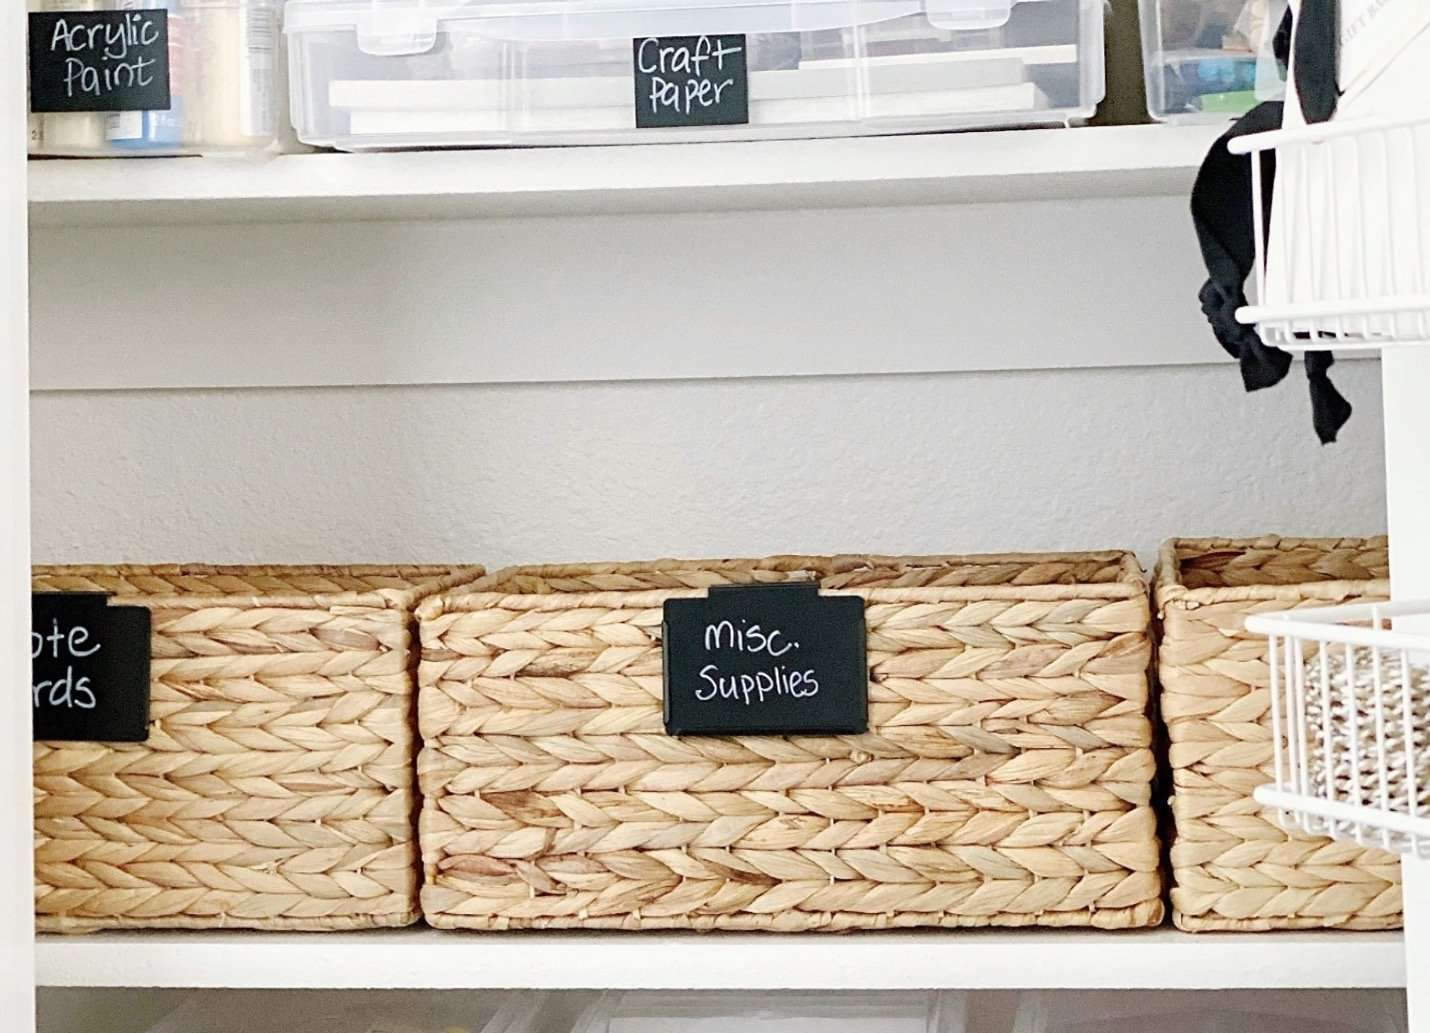 craft supplies store in plastic and woven baskets